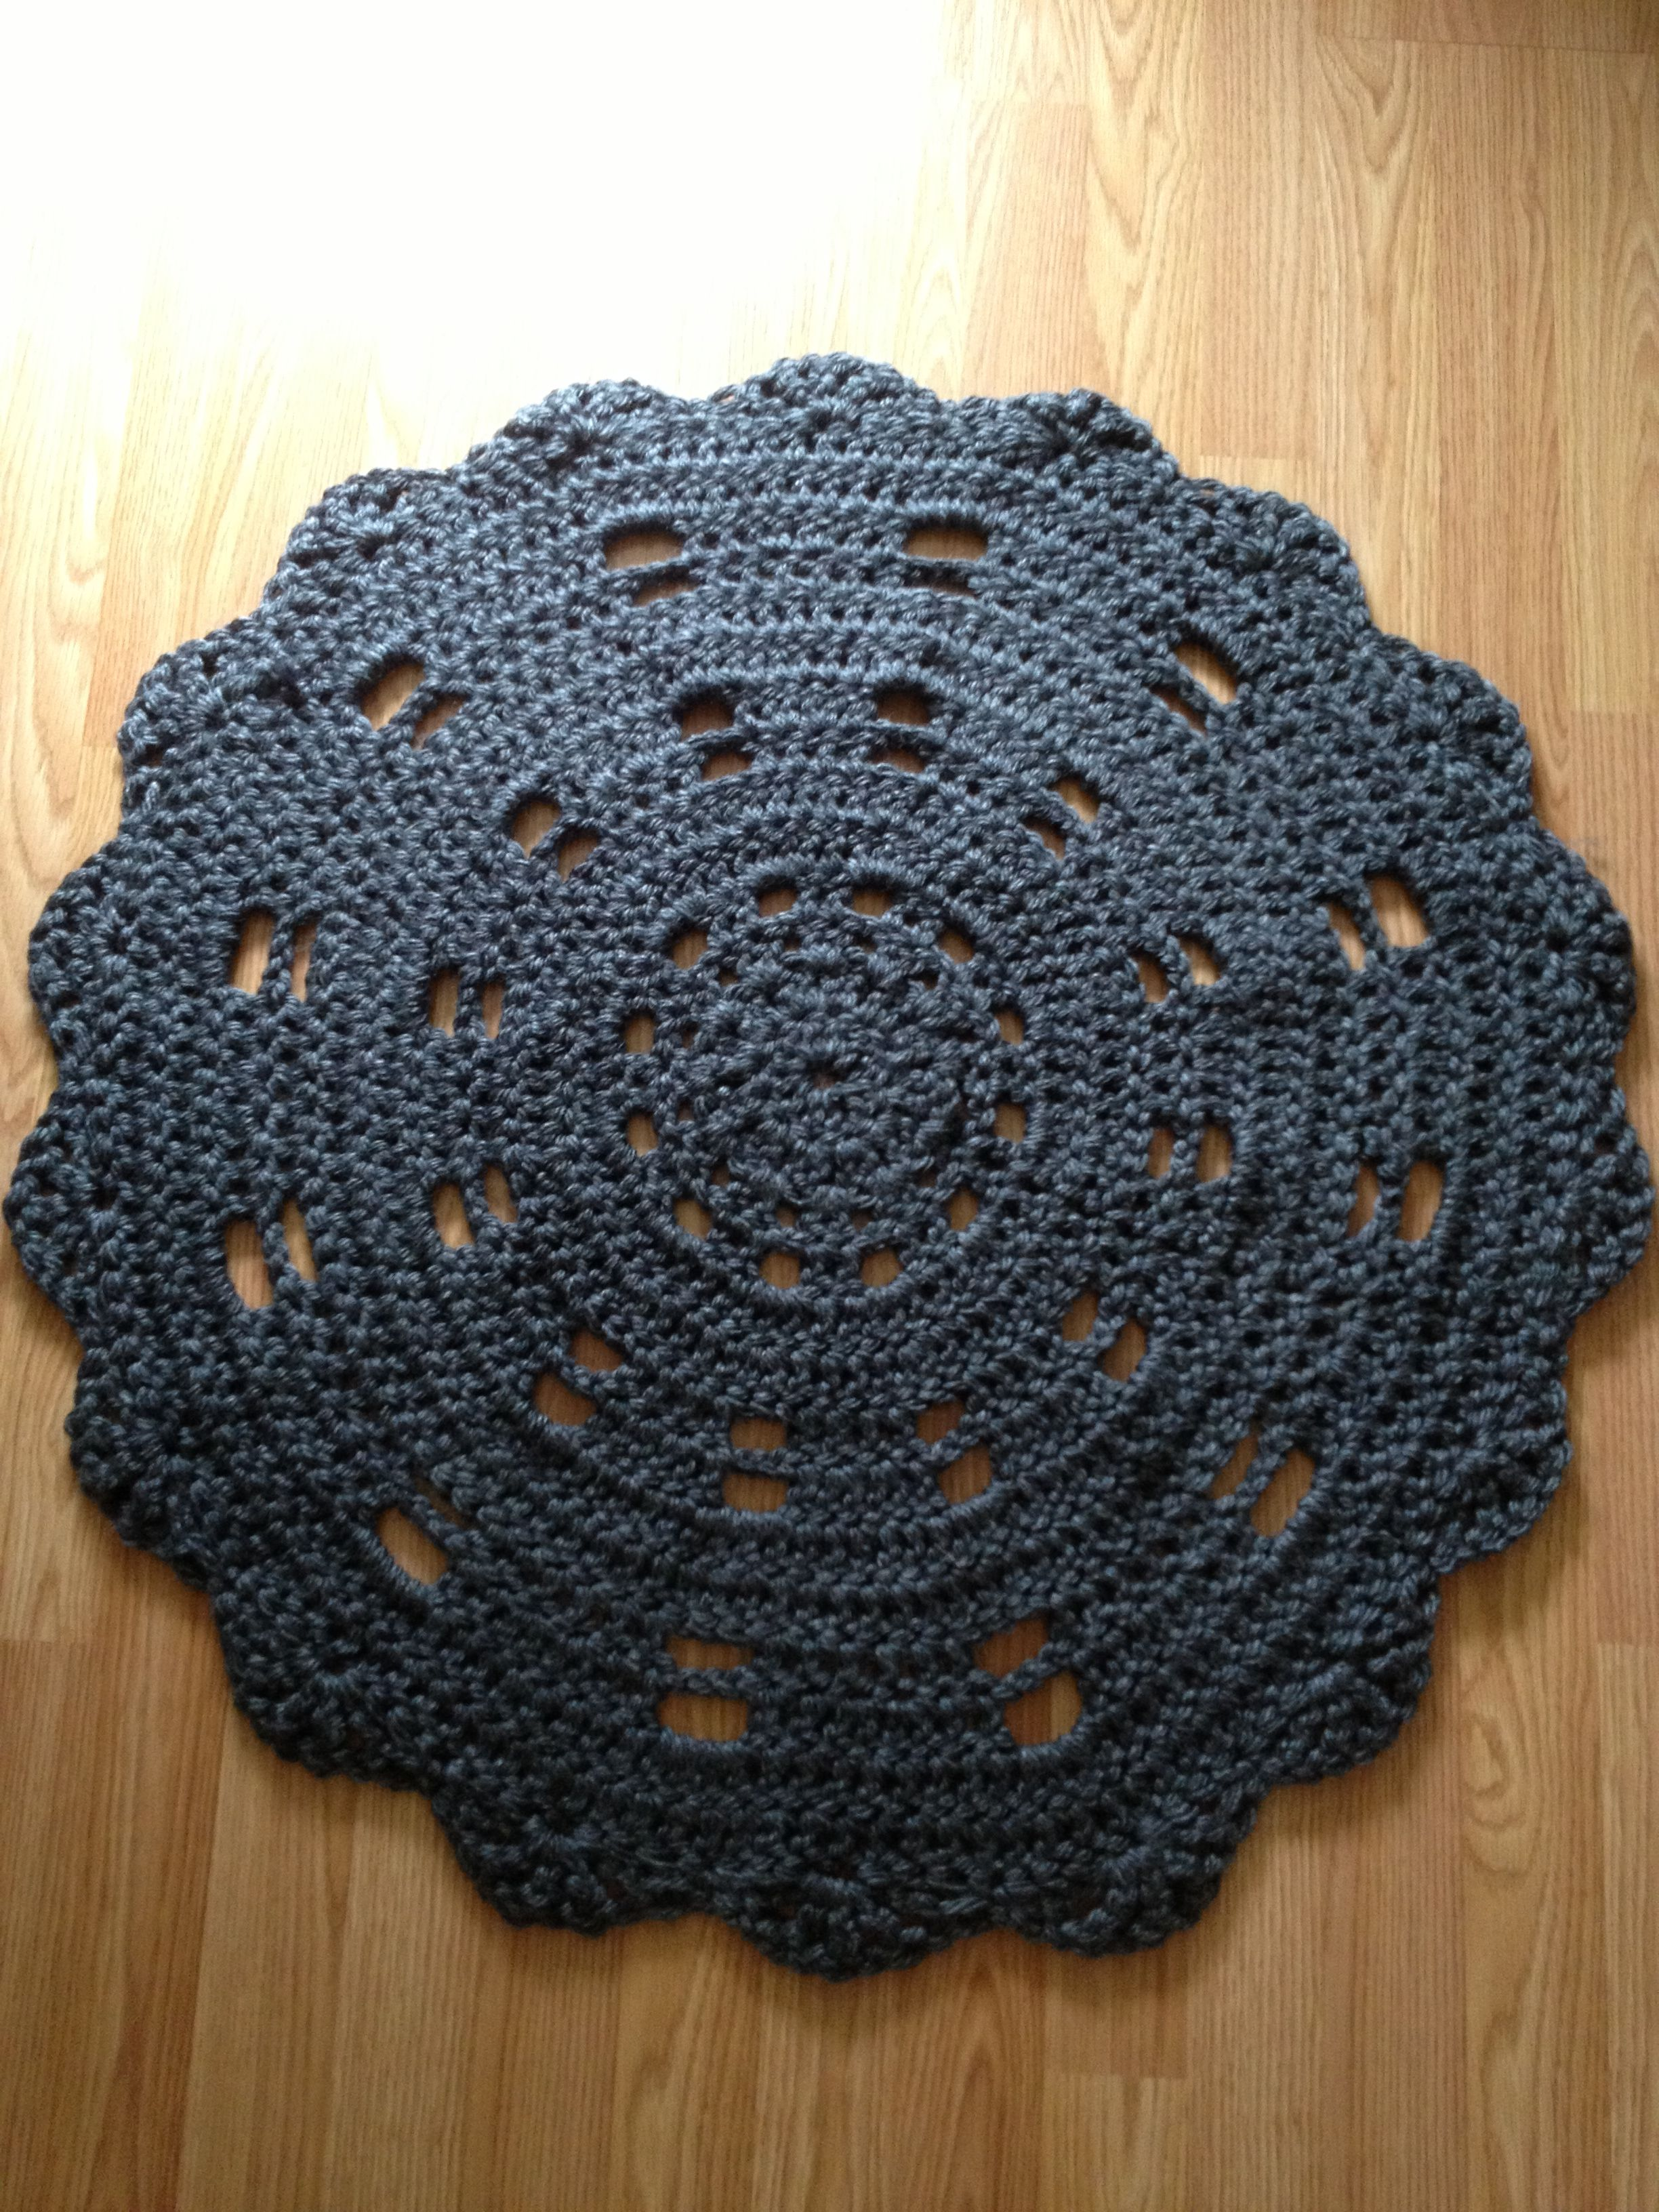 Crocheting Round Rugs : Round crocheted rug. Crochet inspiration Pinterest